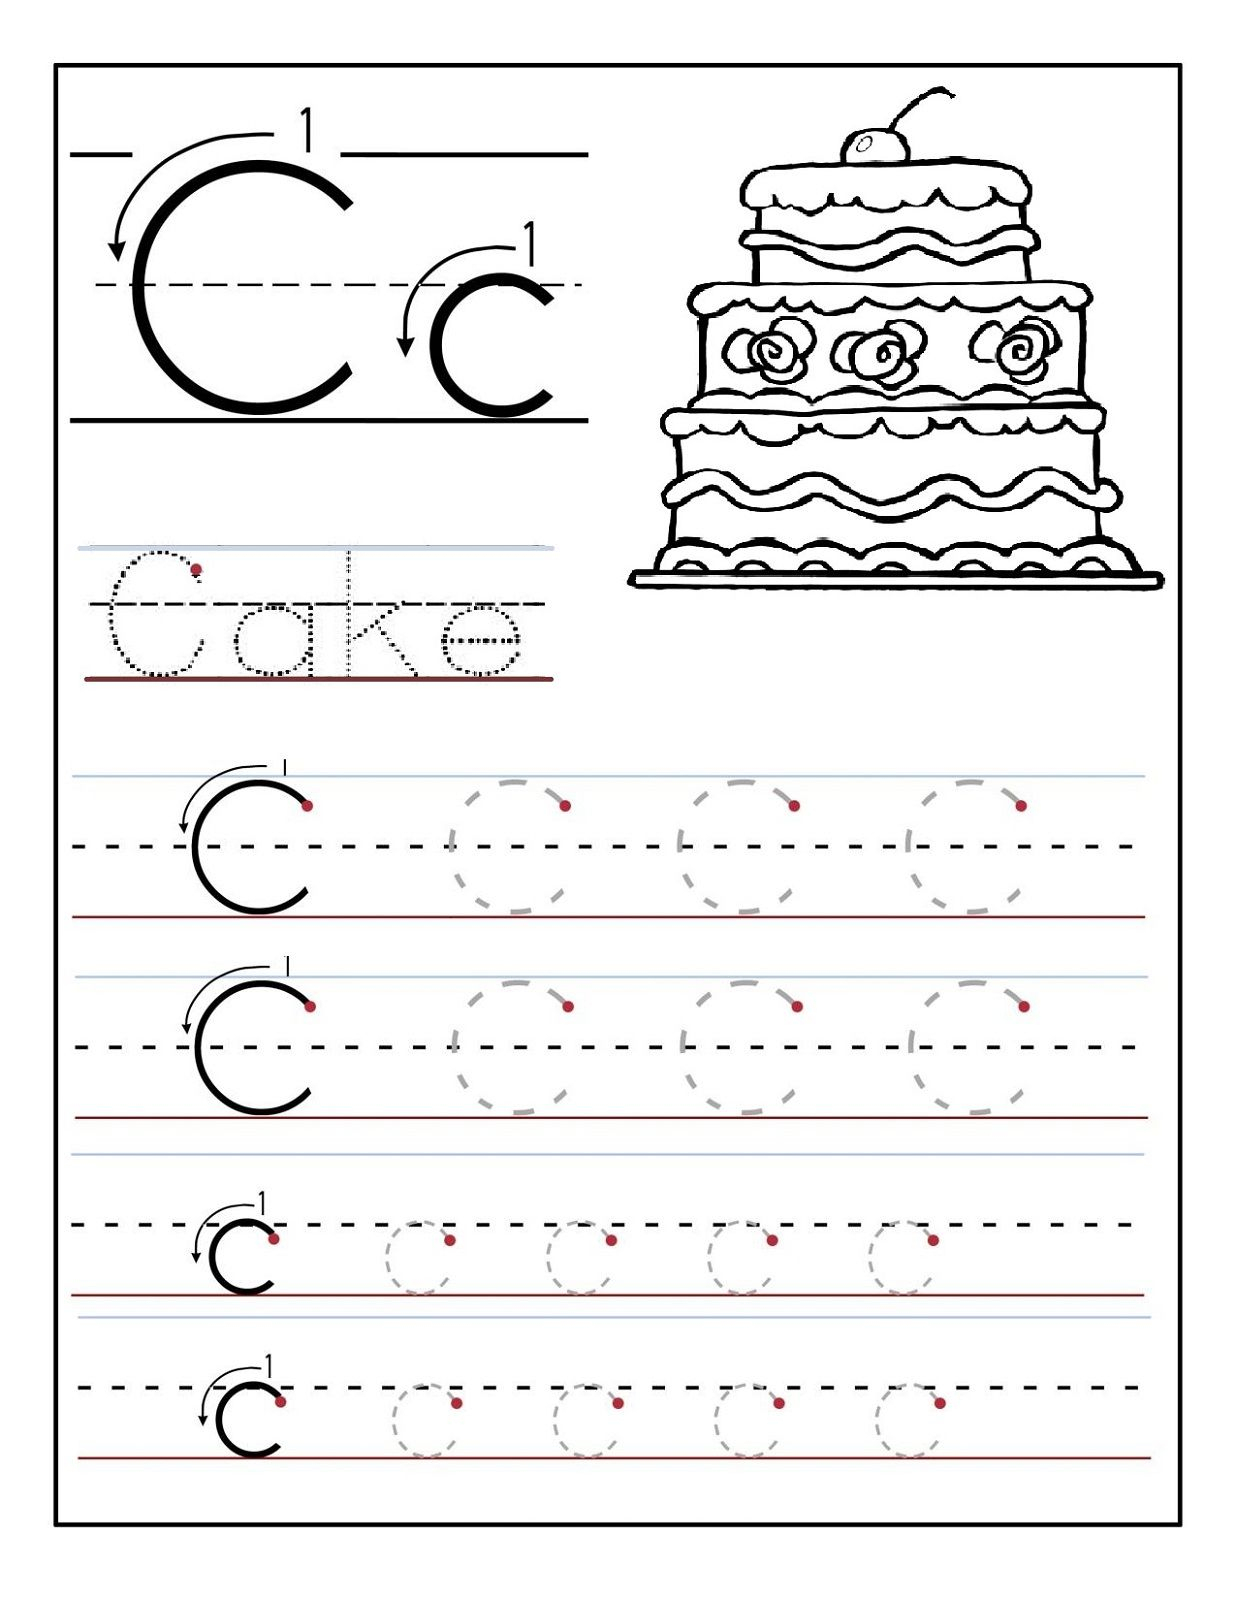 Trace The Letter C Worksheets   Alphabet And Numbers Learning   Letter C Printable Worksheets